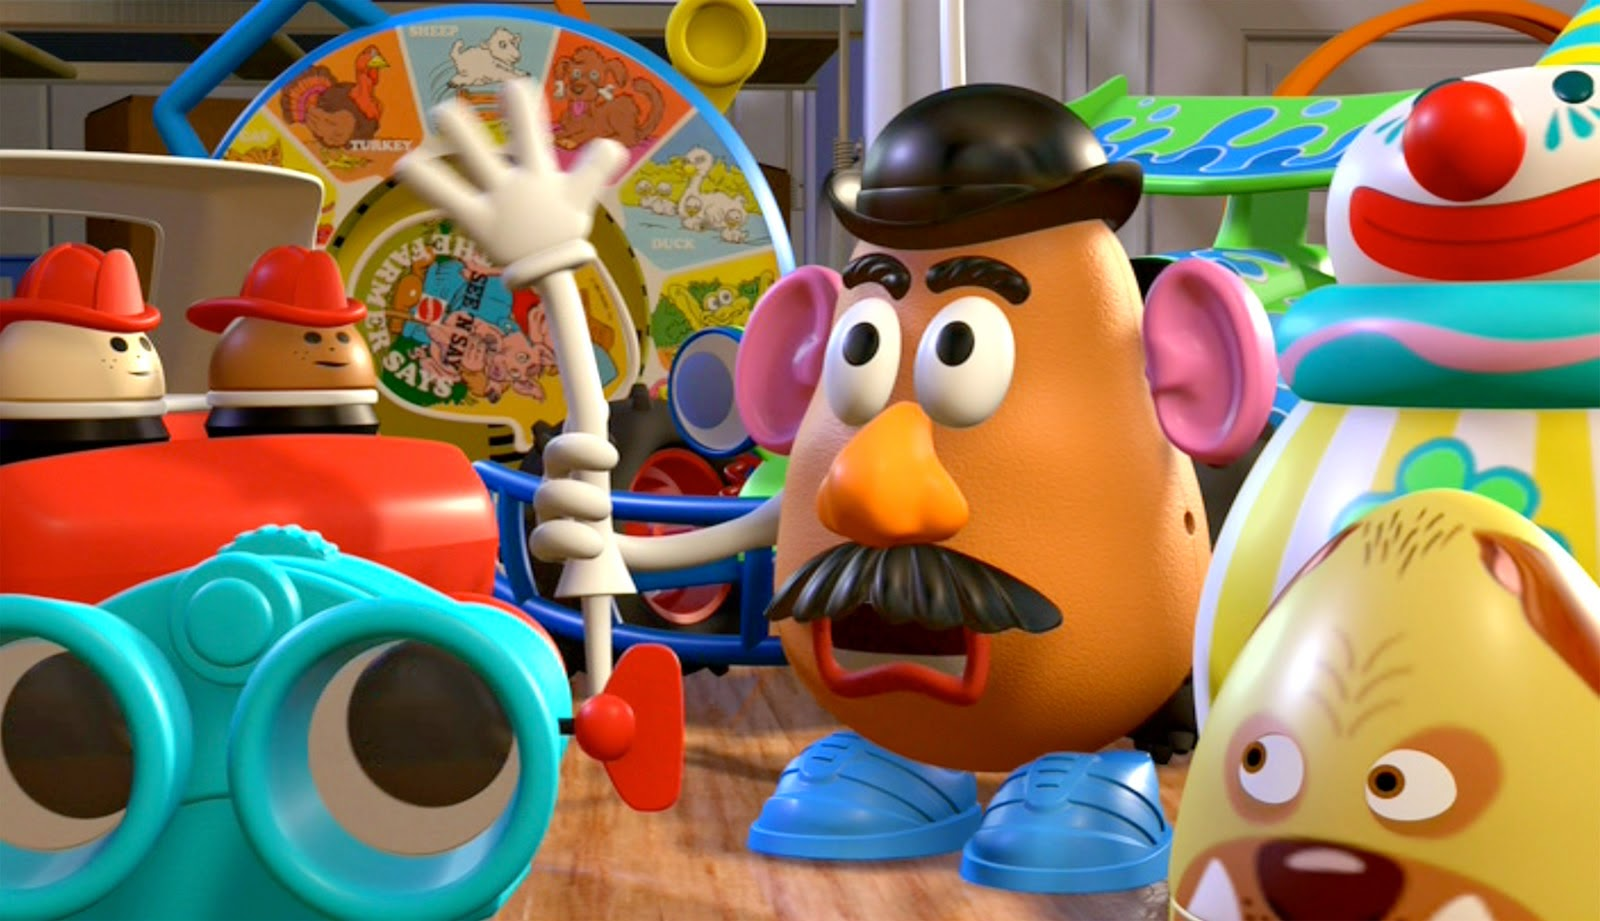 Mr. Potato en Toy Story de PIxar